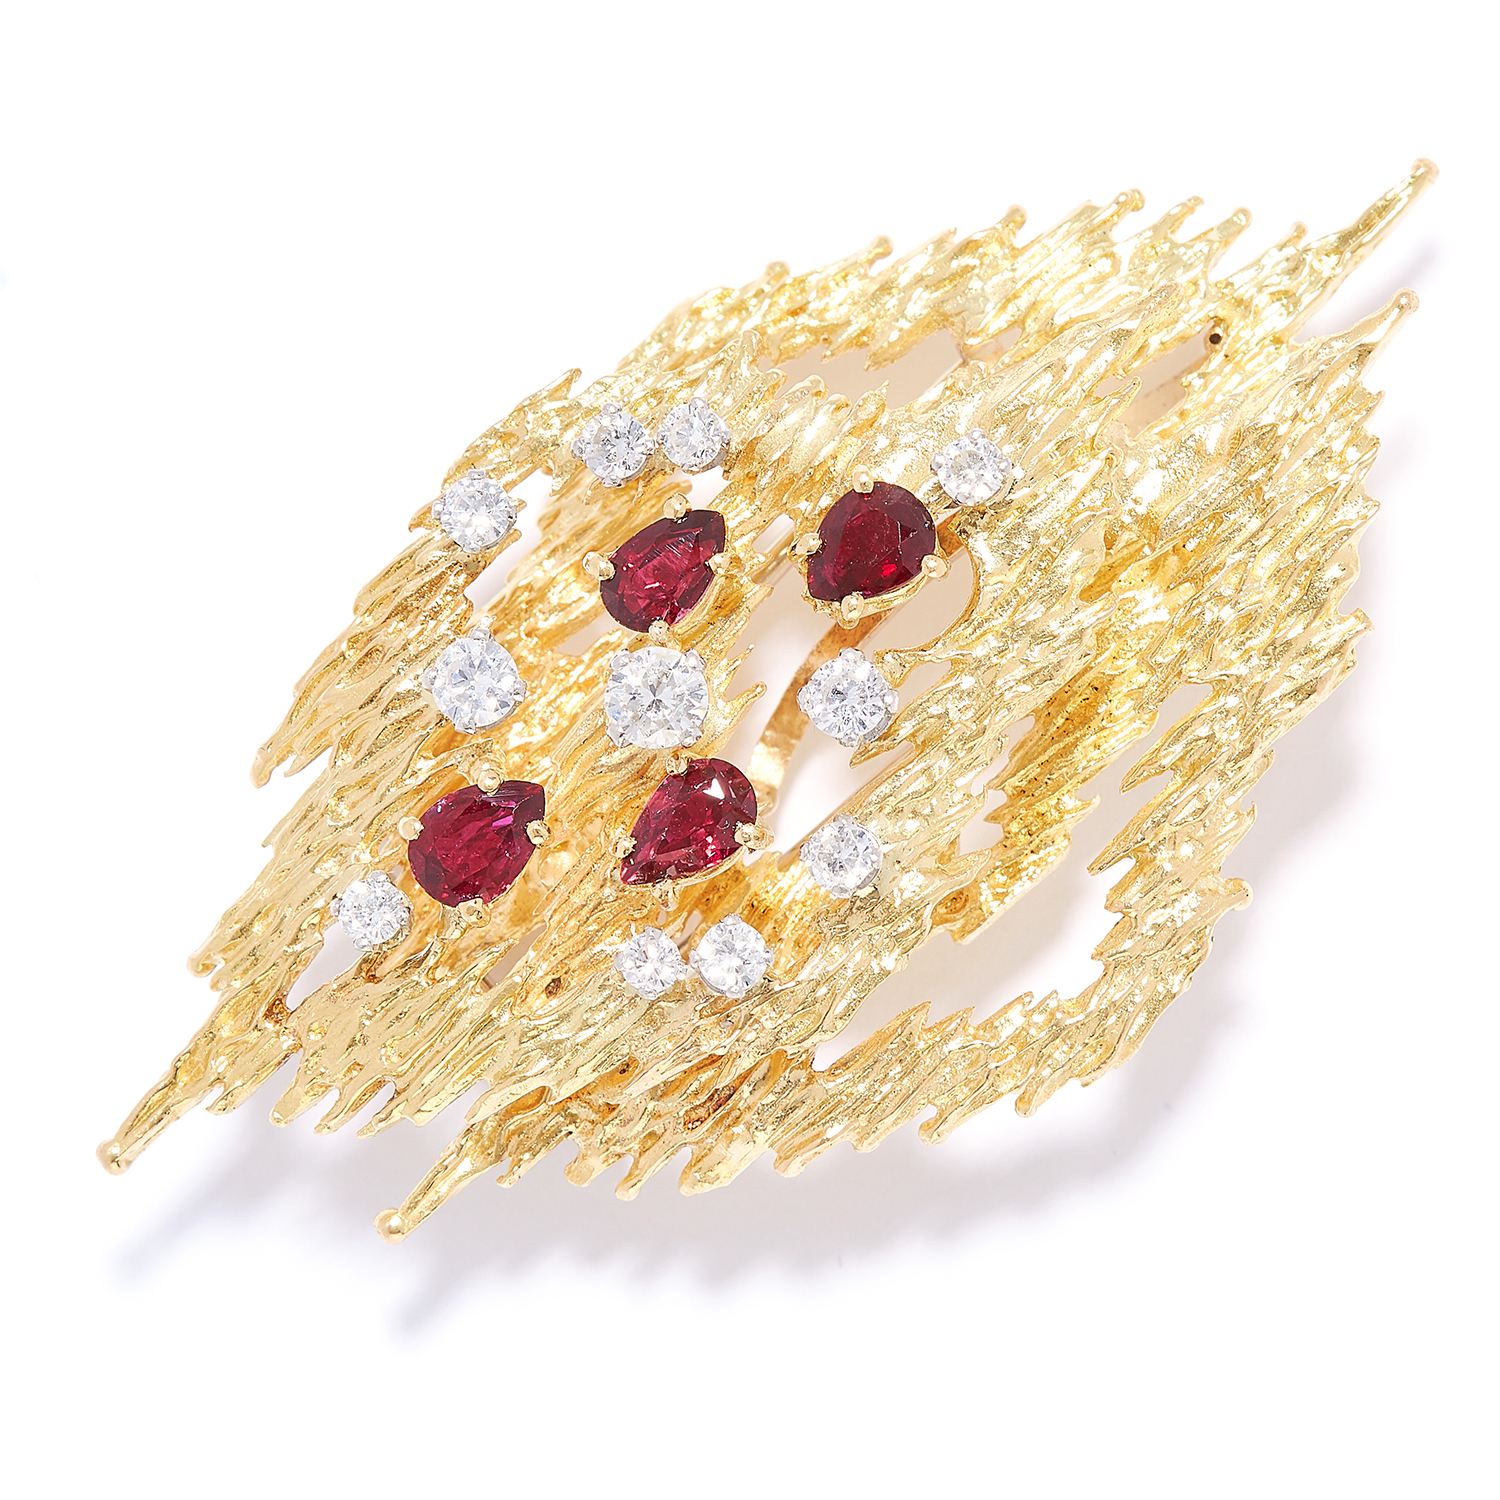 RUBY AND DIAMOND BROOCH / PENDANT, CIRCA 1976 in 18ct yellow gold, in abstract design, jewelled with